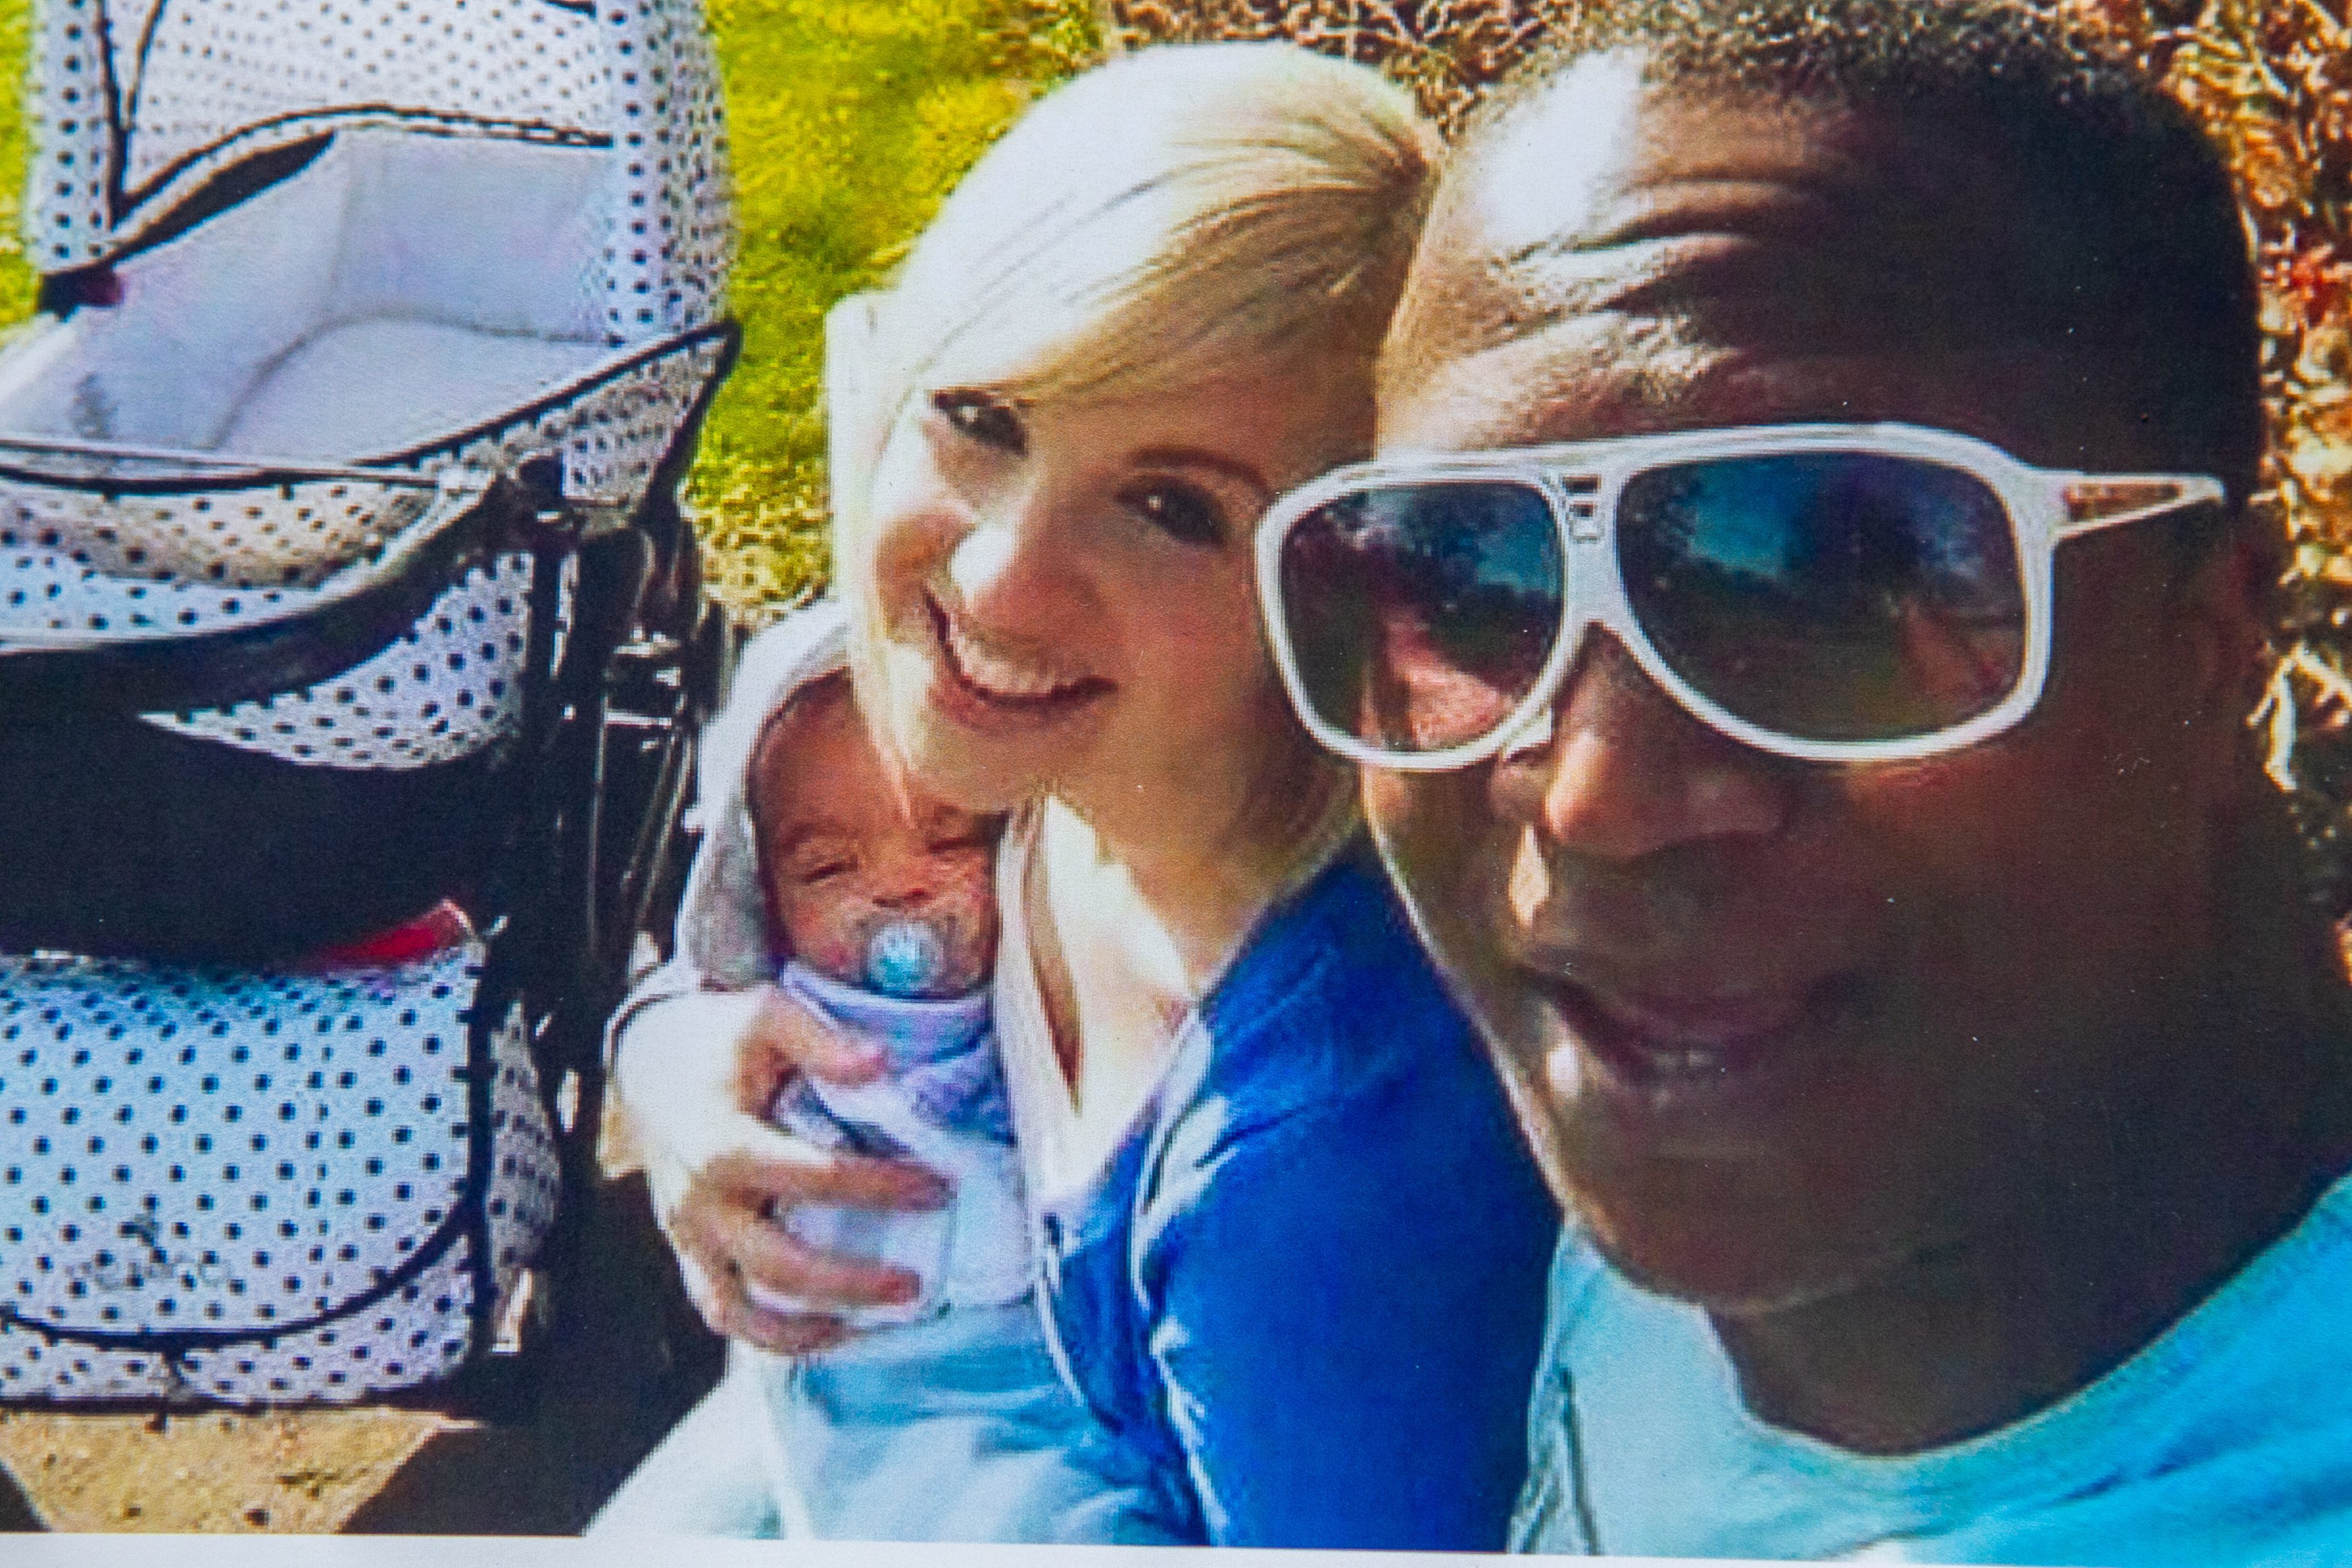 Collette Bell whose boyfriend Sheku Bayoh died in police custody. They had a baby boy, Isaac together.